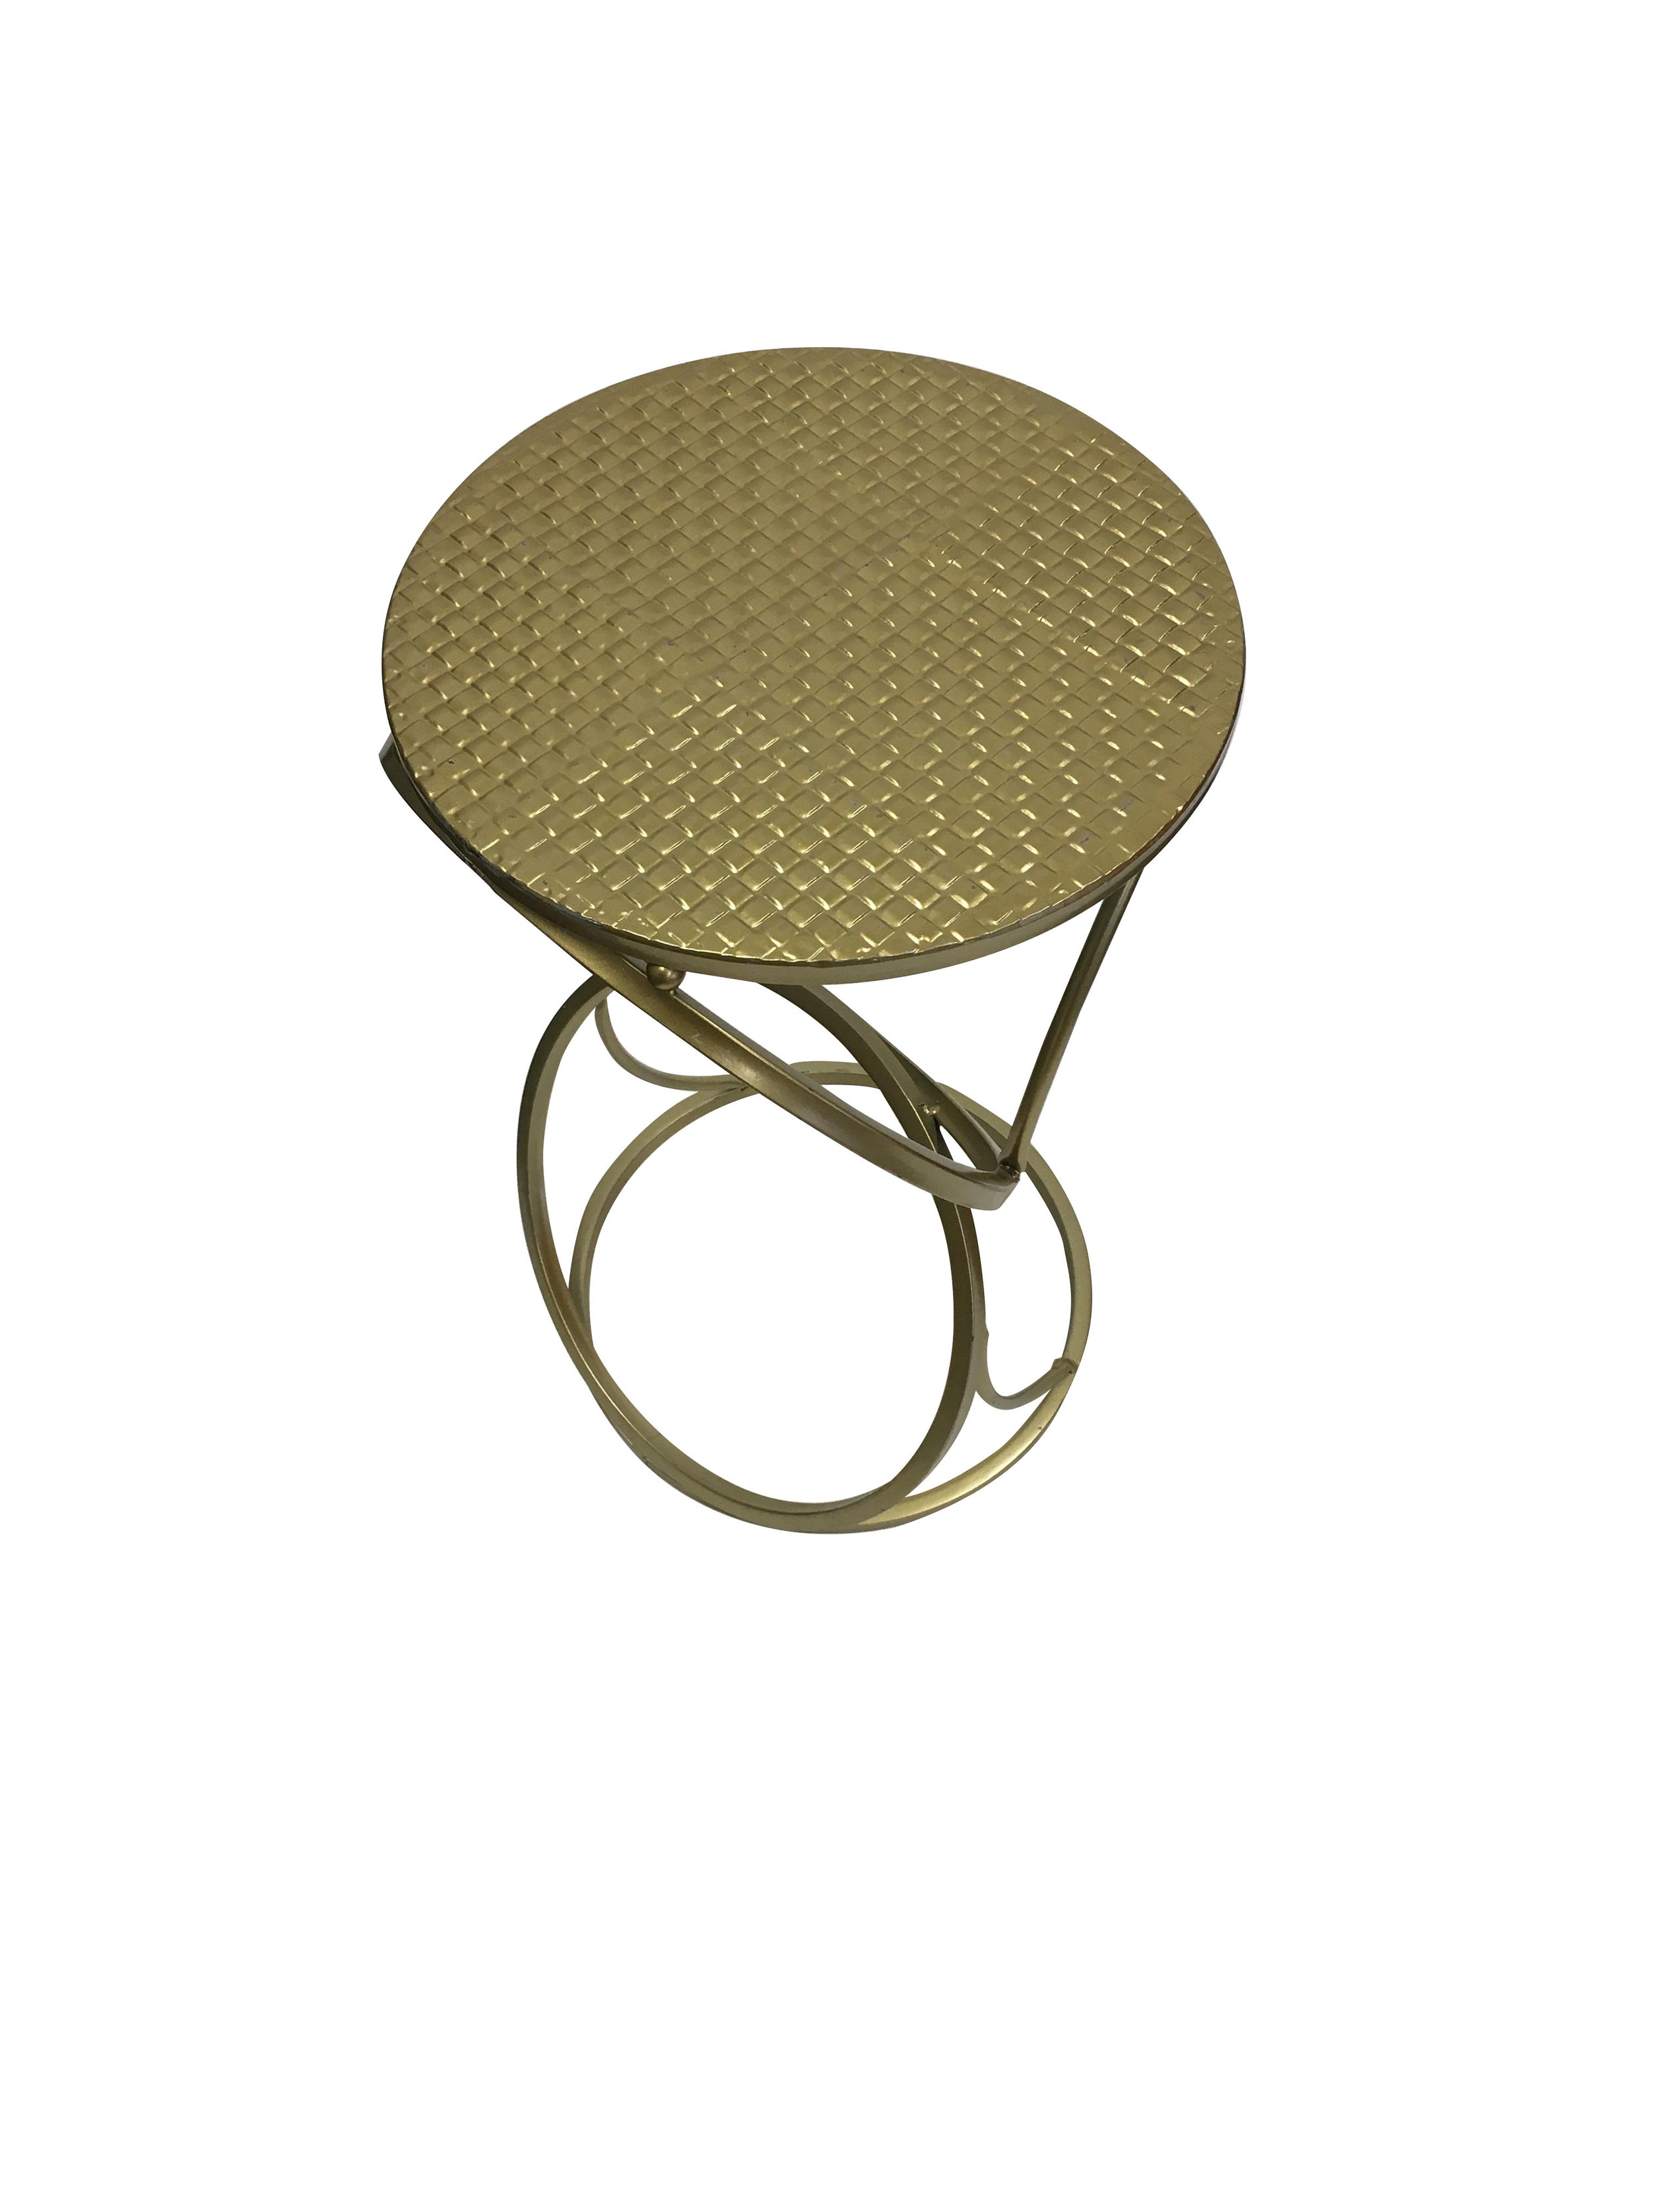 Gold Round Small End Table1.jpg